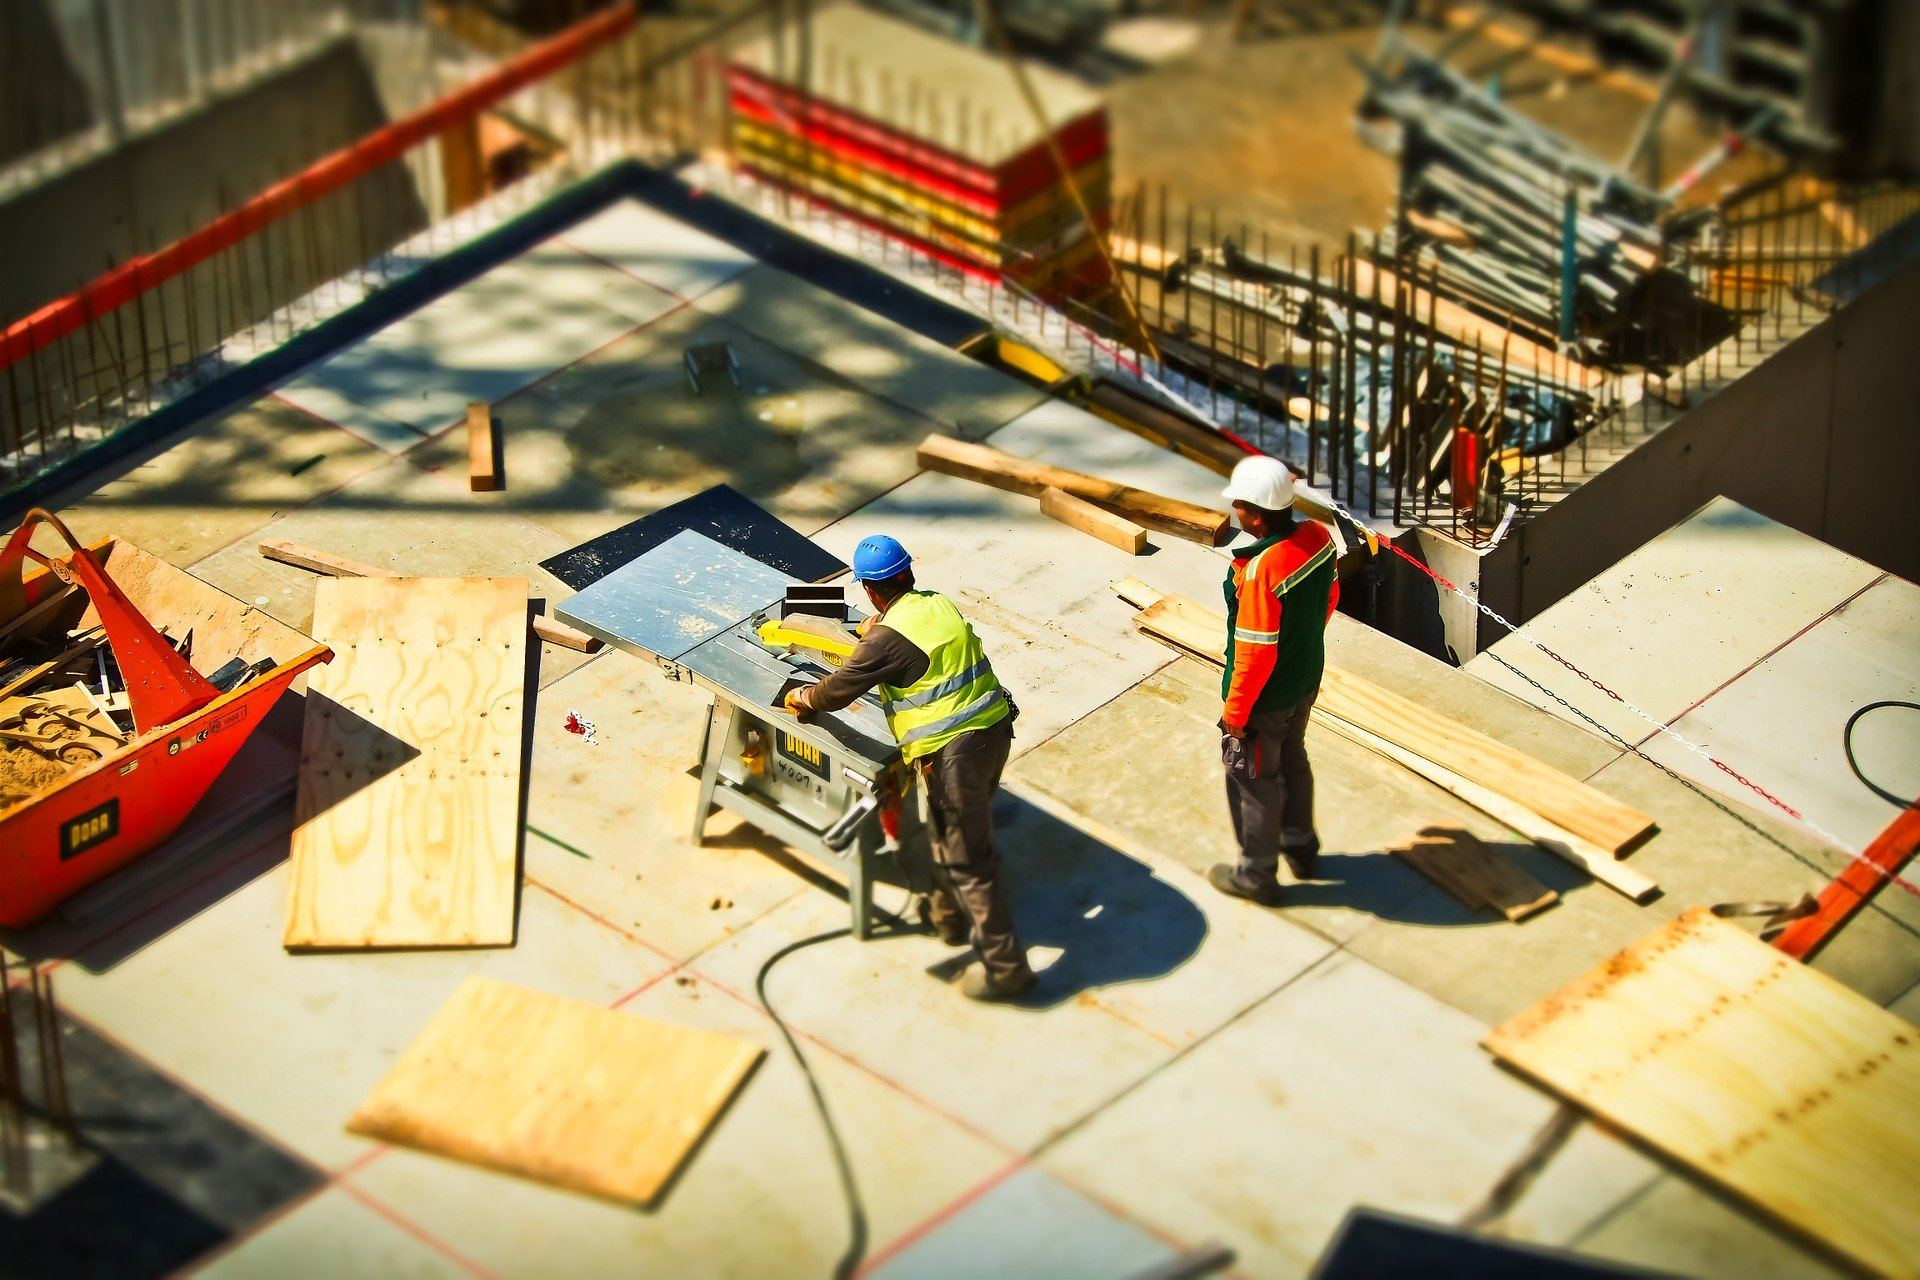 Top 10 safety risks in construction